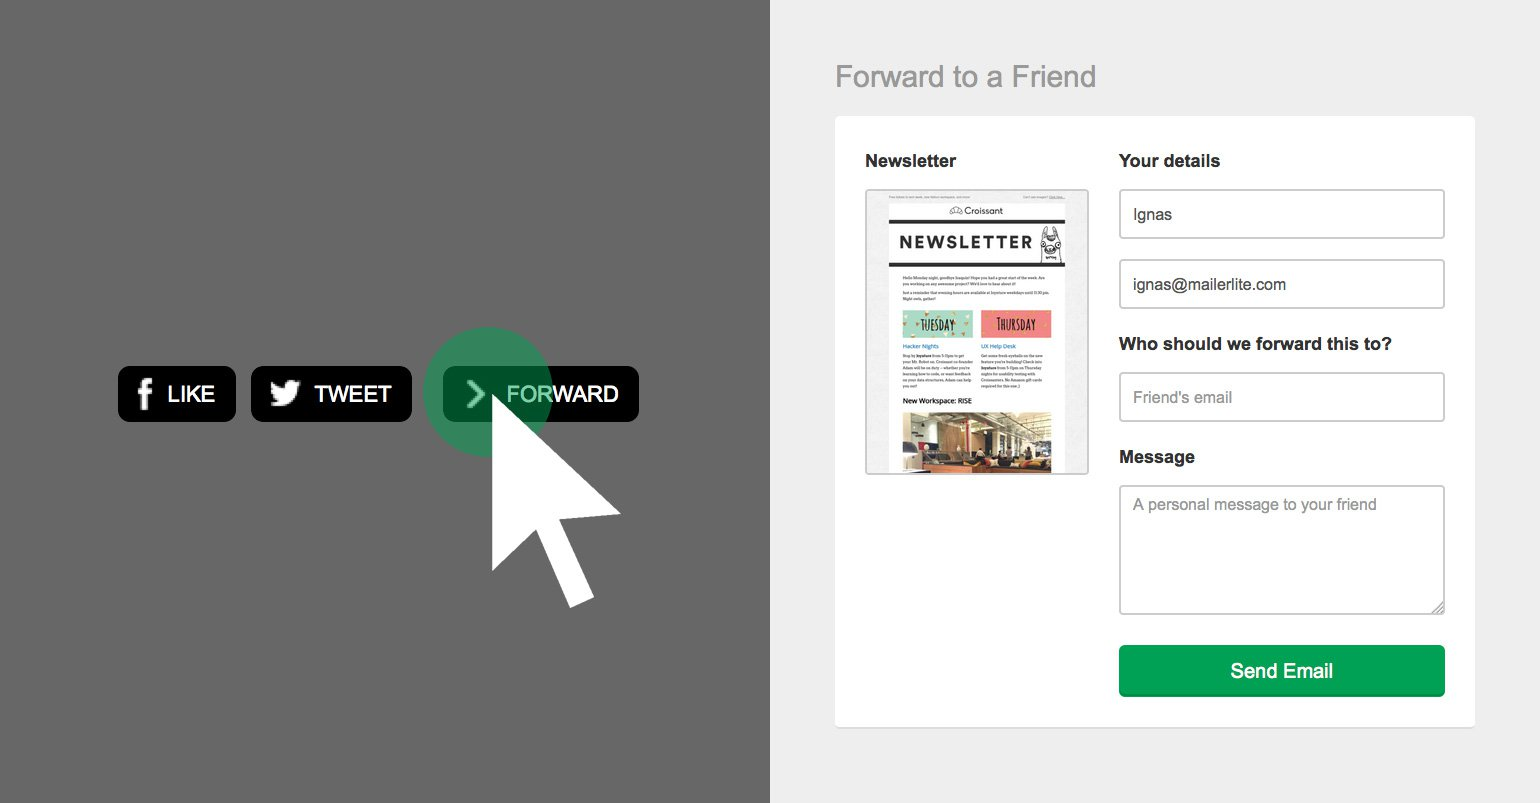 New Feature: Forward to a Friend